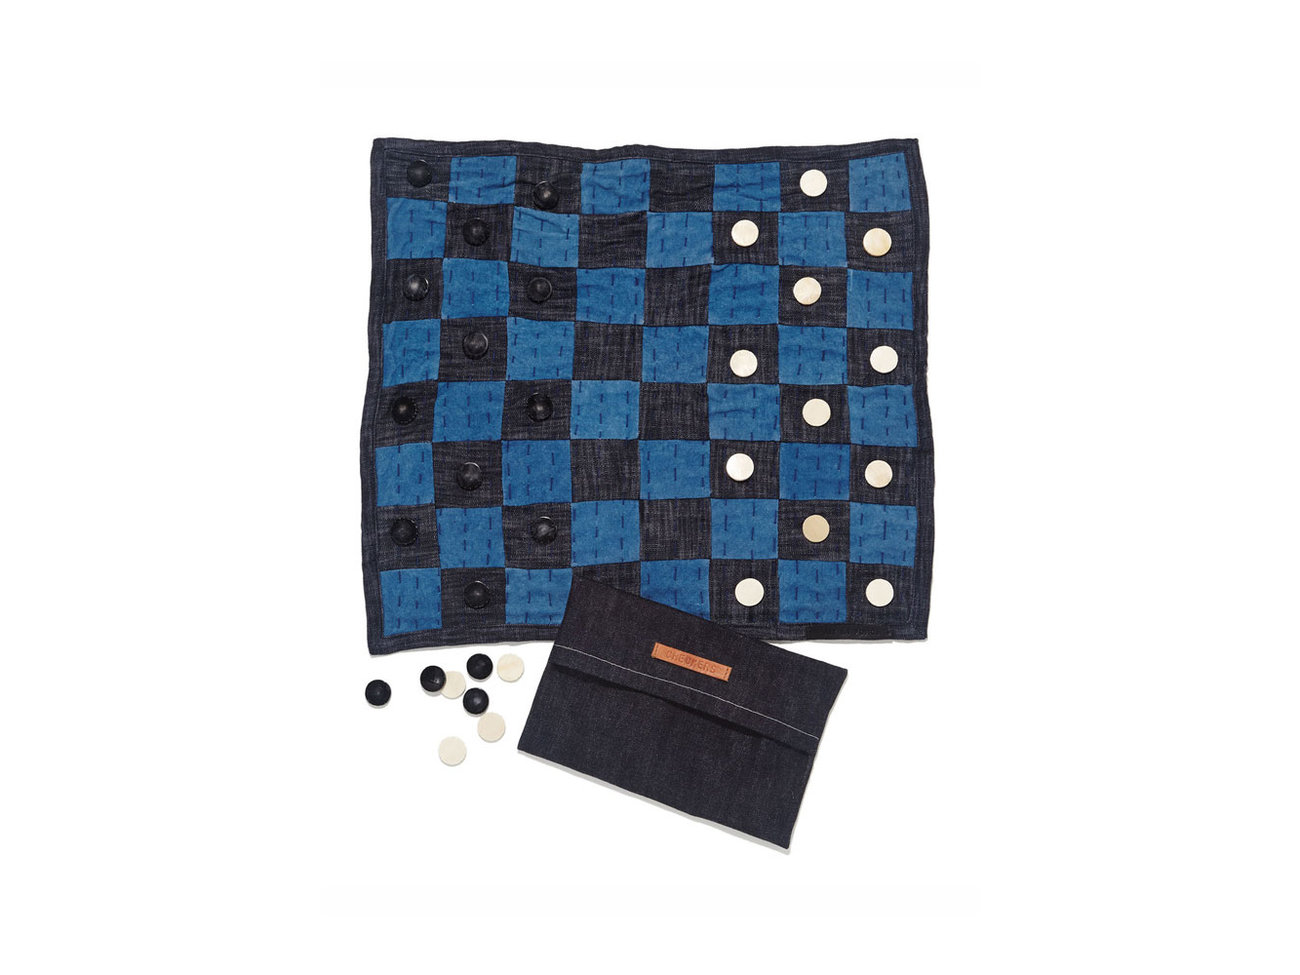 Give-Indigo-Cloth-Checkers-GG1115.jpg